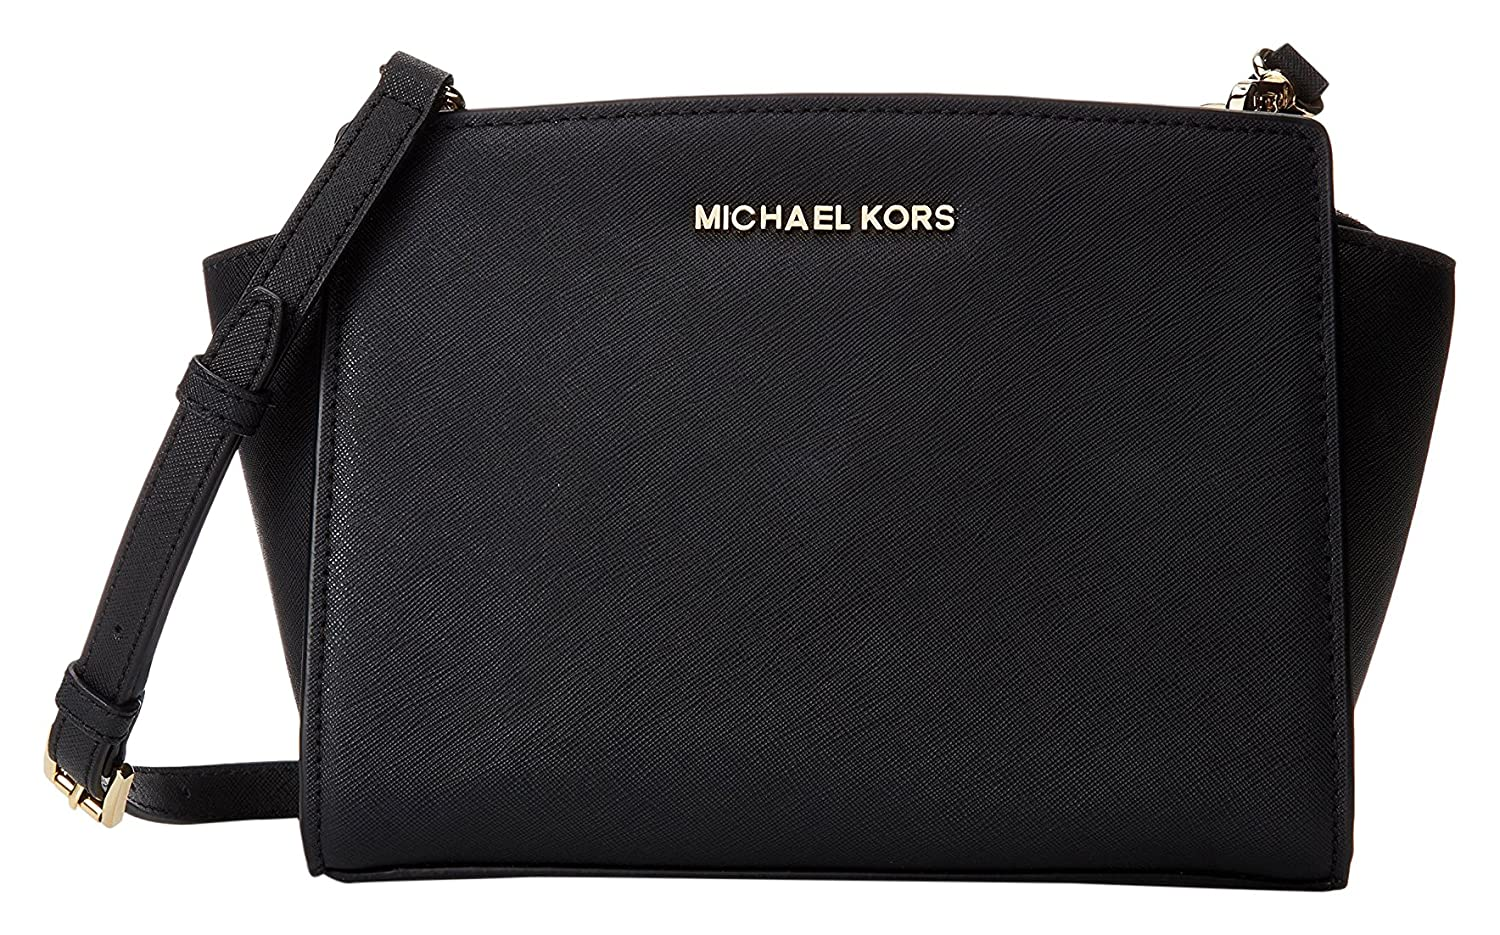 906ecf2c29992 ... cheap michael kors womens selma medium messenger bag black black 001  one size amazon shoes bags